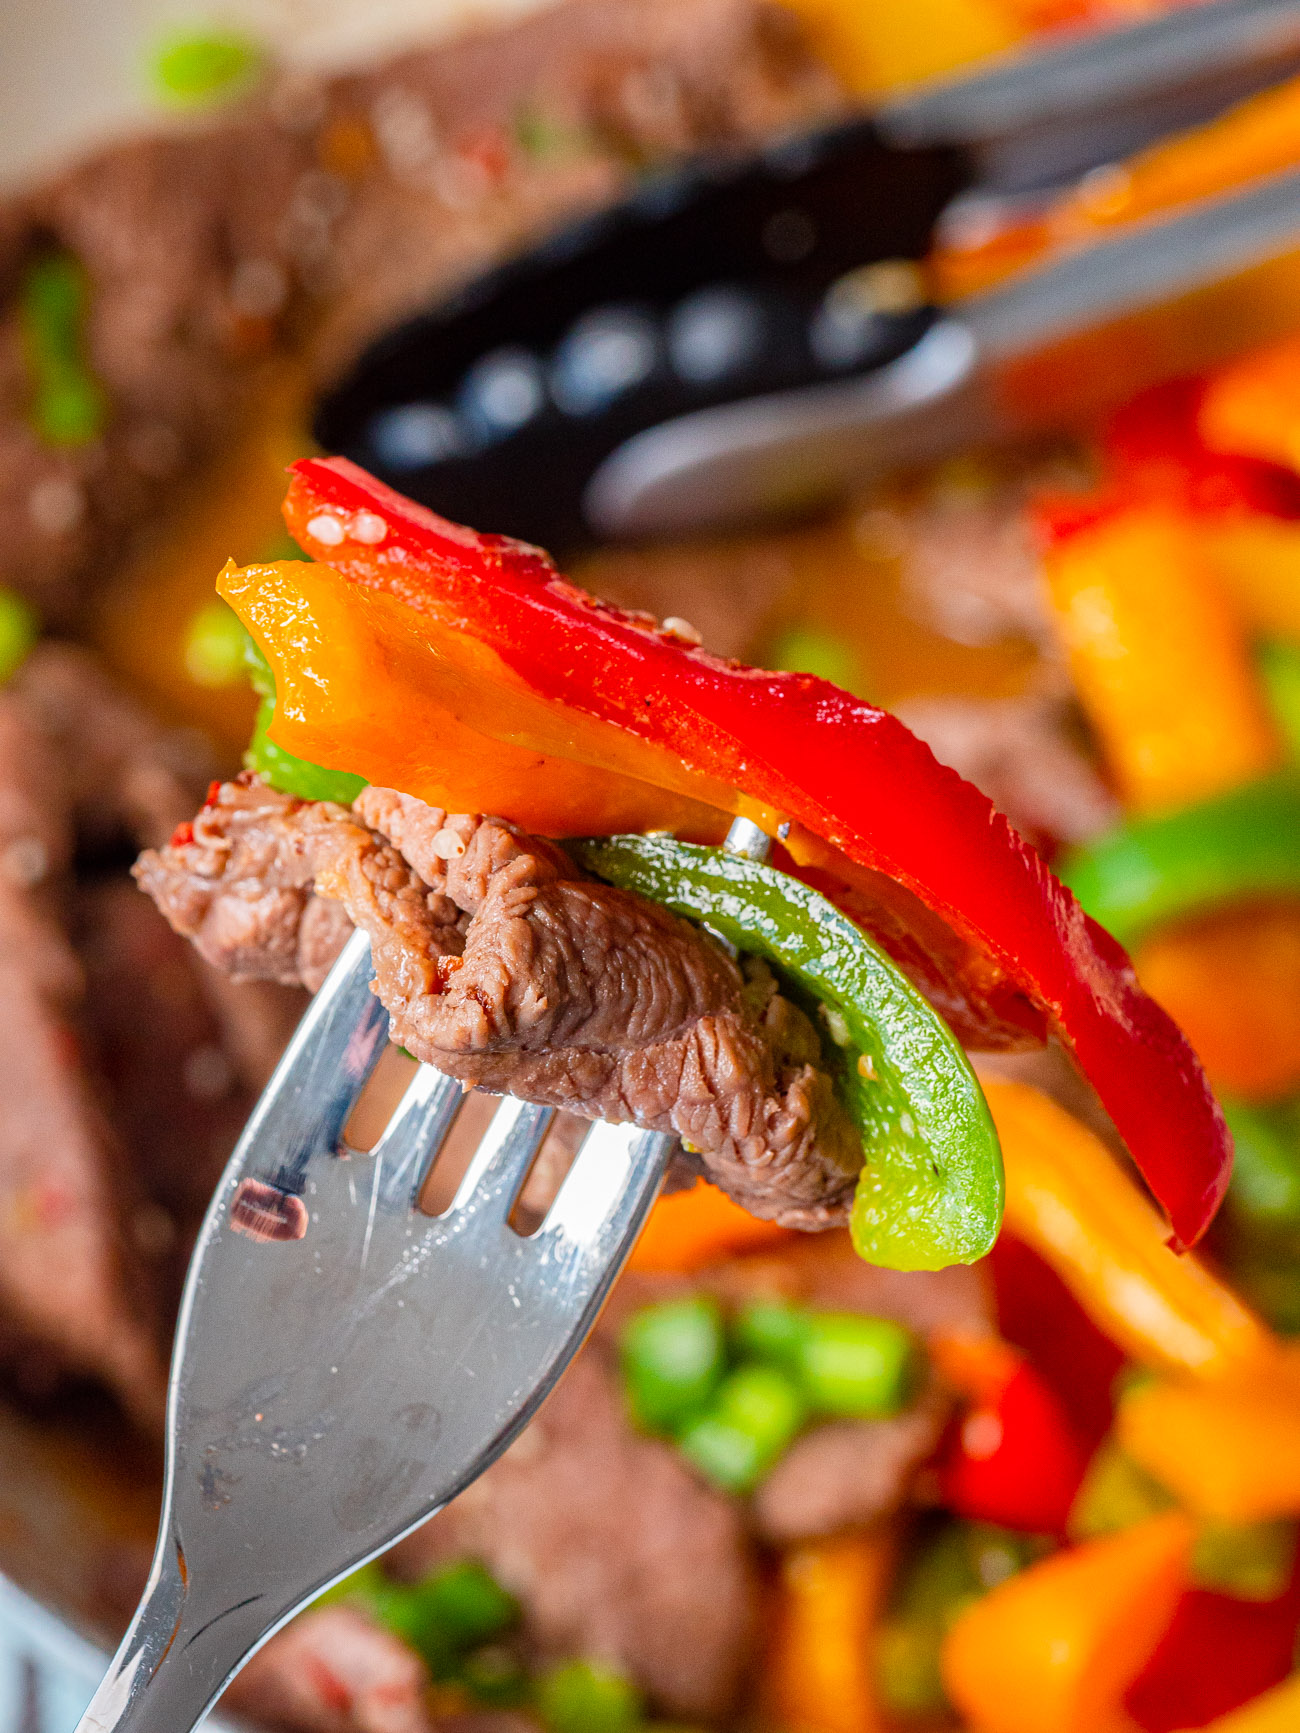 Close up of a forkful of steak and peppers